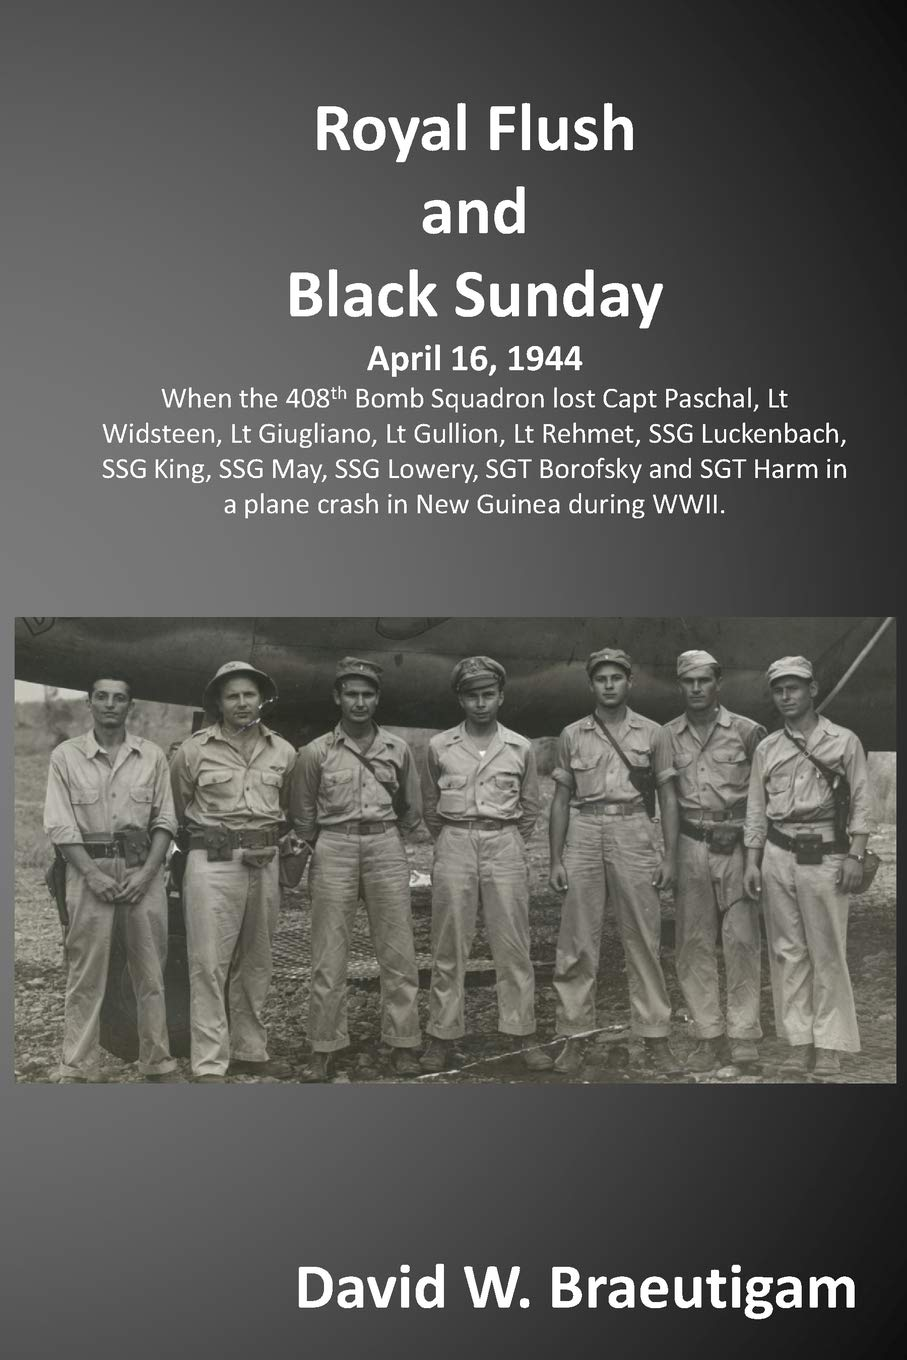 Royal Flush and Black Sunday: When the 408th Bomb Squadron misplaced the team of the Royal Flush and had been found out 60 years later.